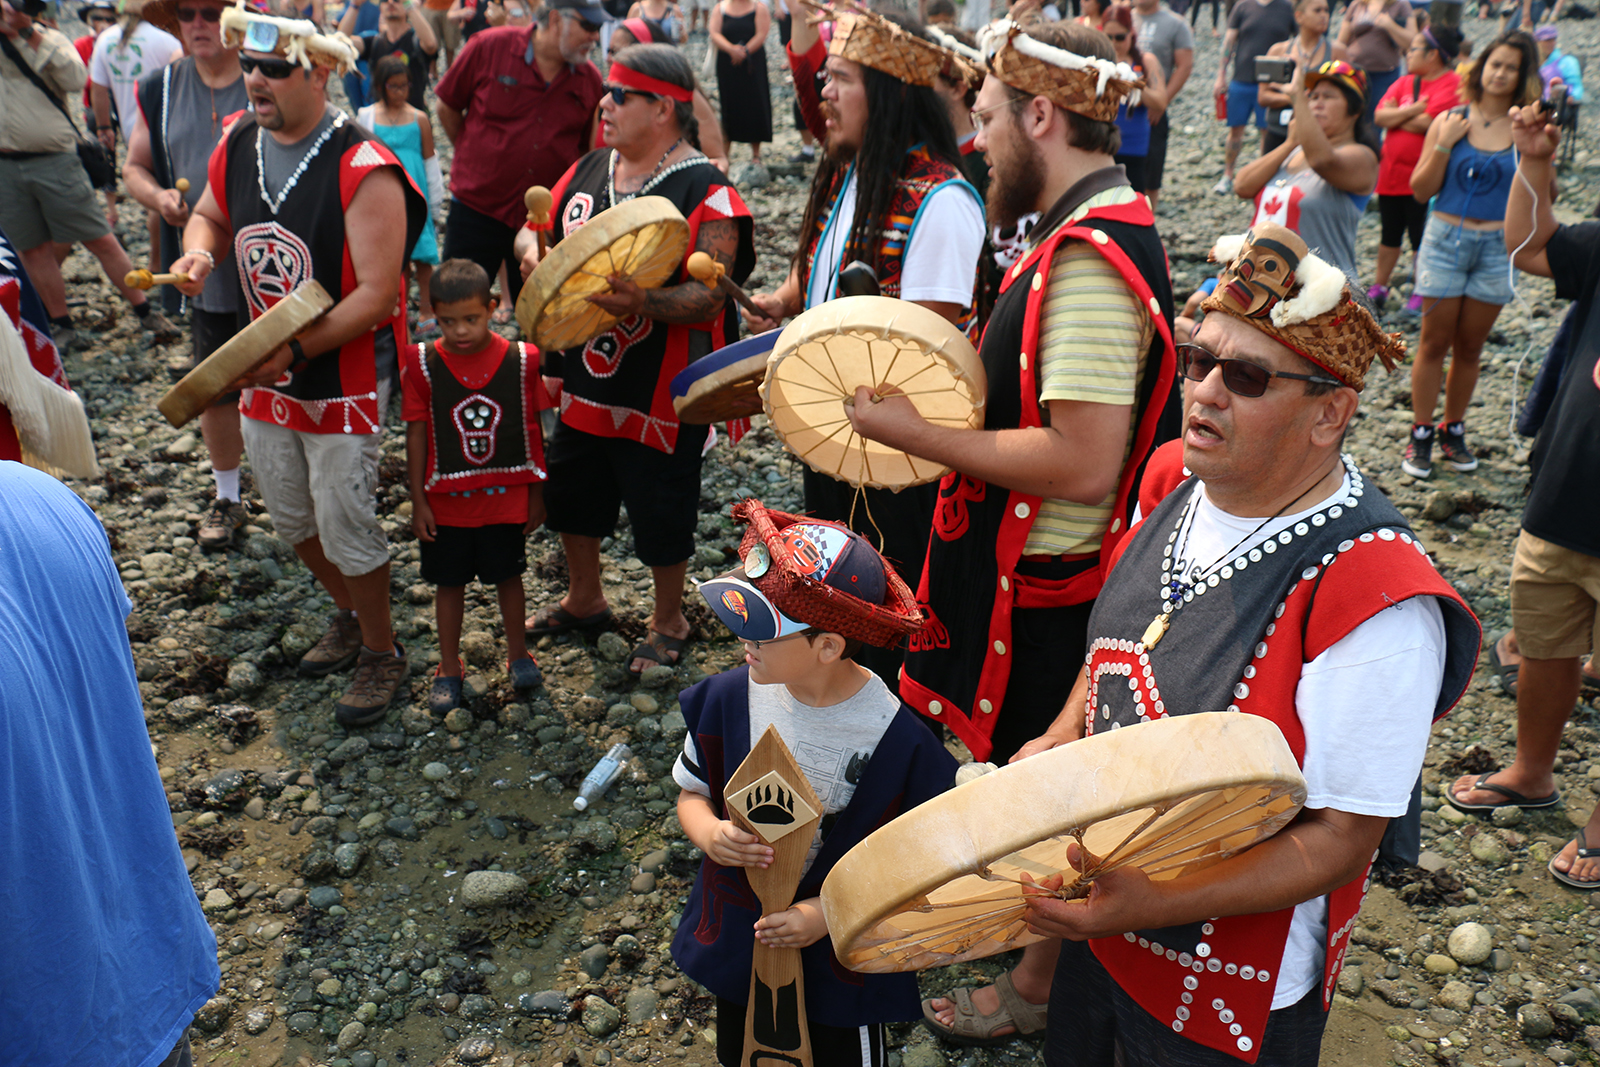 A Lekwitok drum group sings visitors into Wei Wai Kum shores in Campbell River, B.C. on August 5. Master carver George Hunt Jr. stands among them at right.